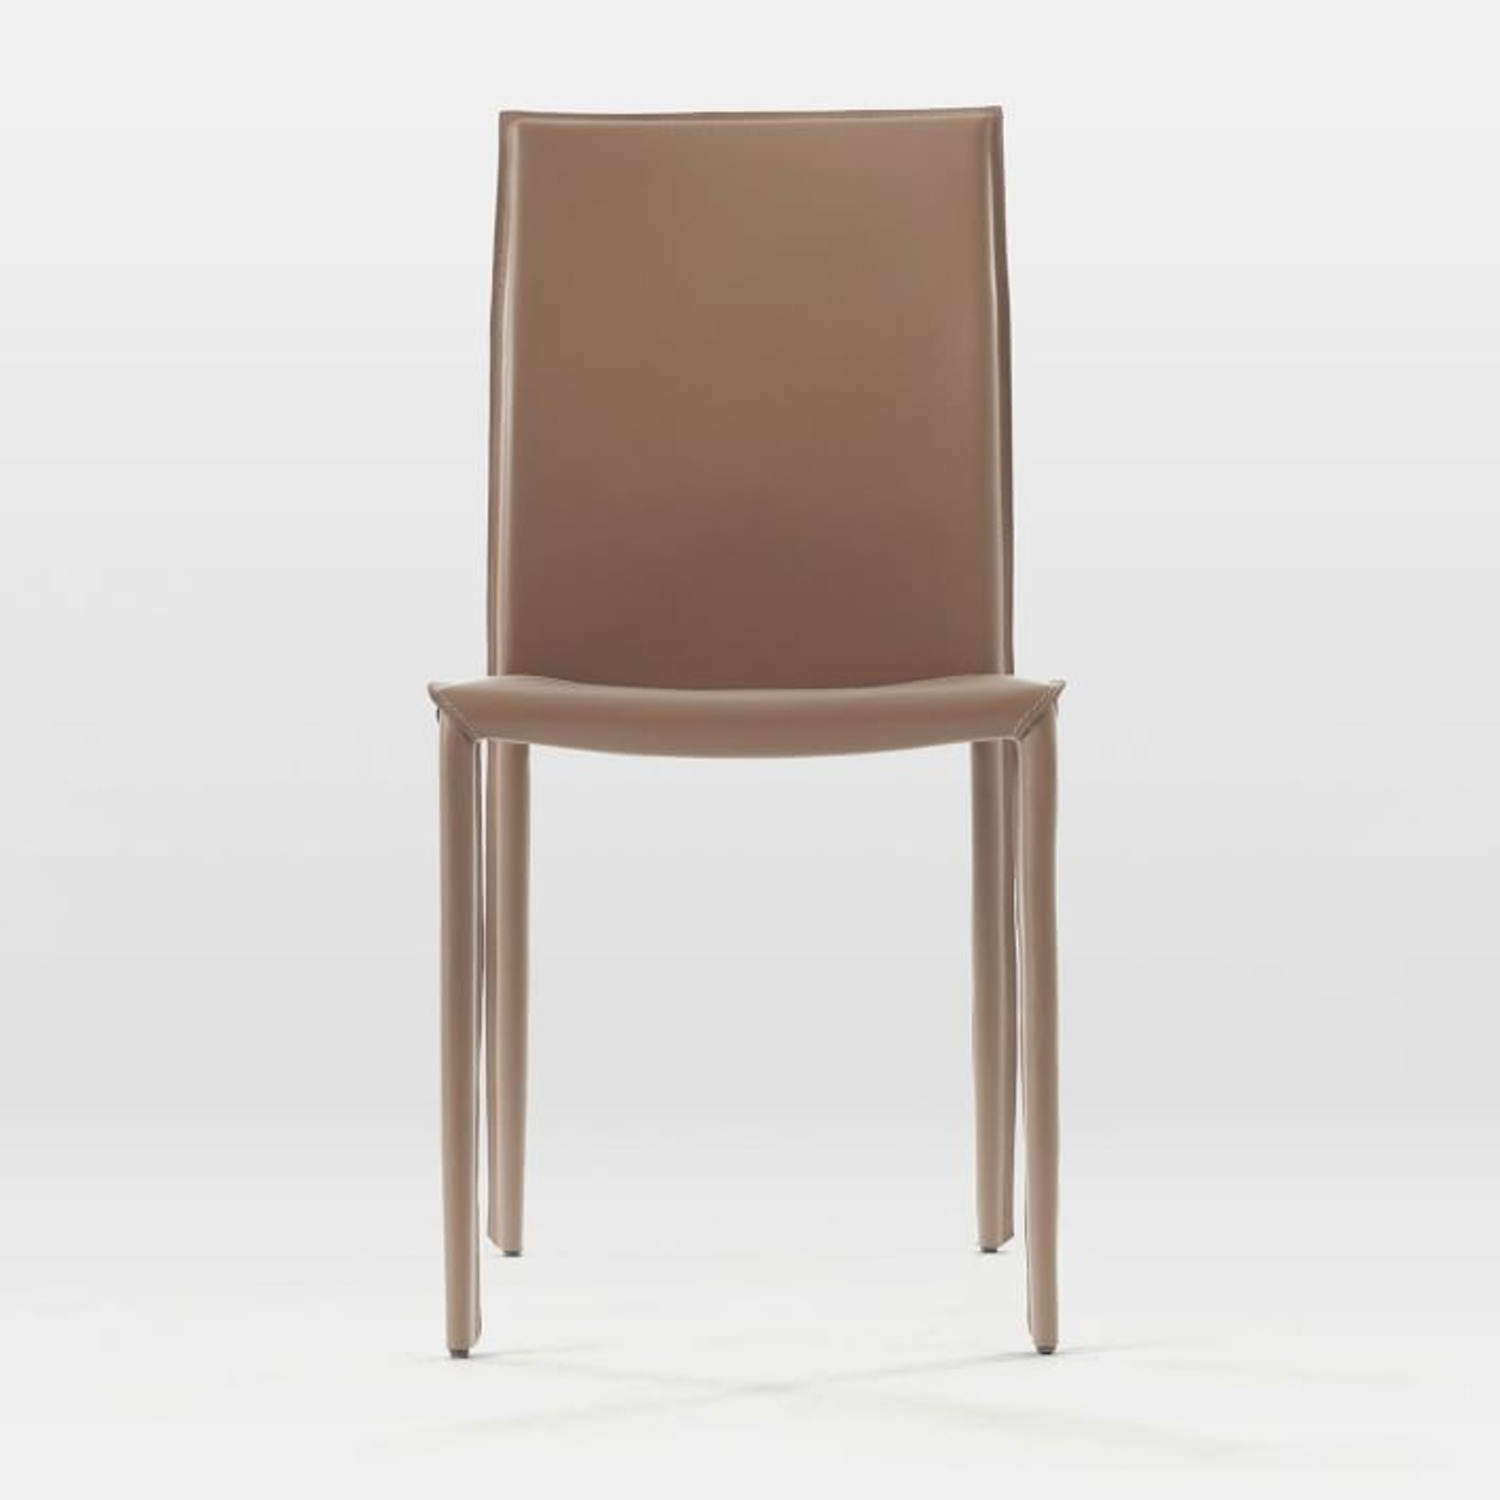 West Elm Lex Dining Chair - image-2